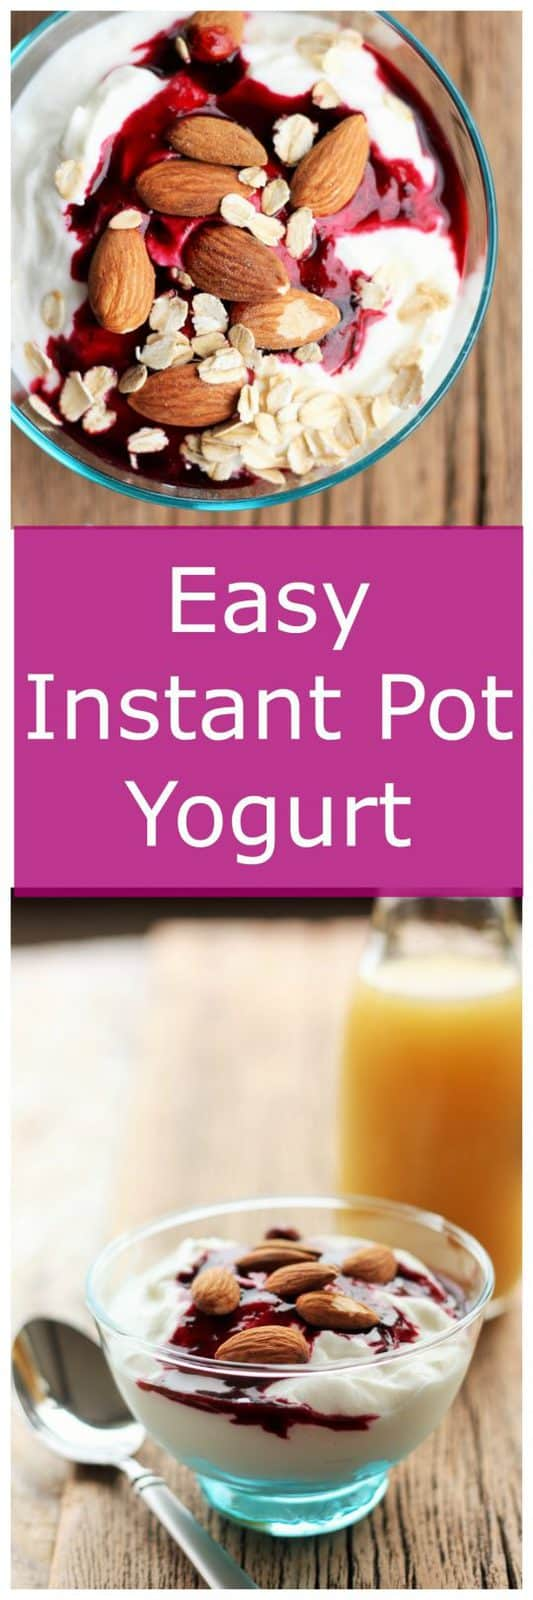 easy instant pot yogurt | sustainablecooks.com